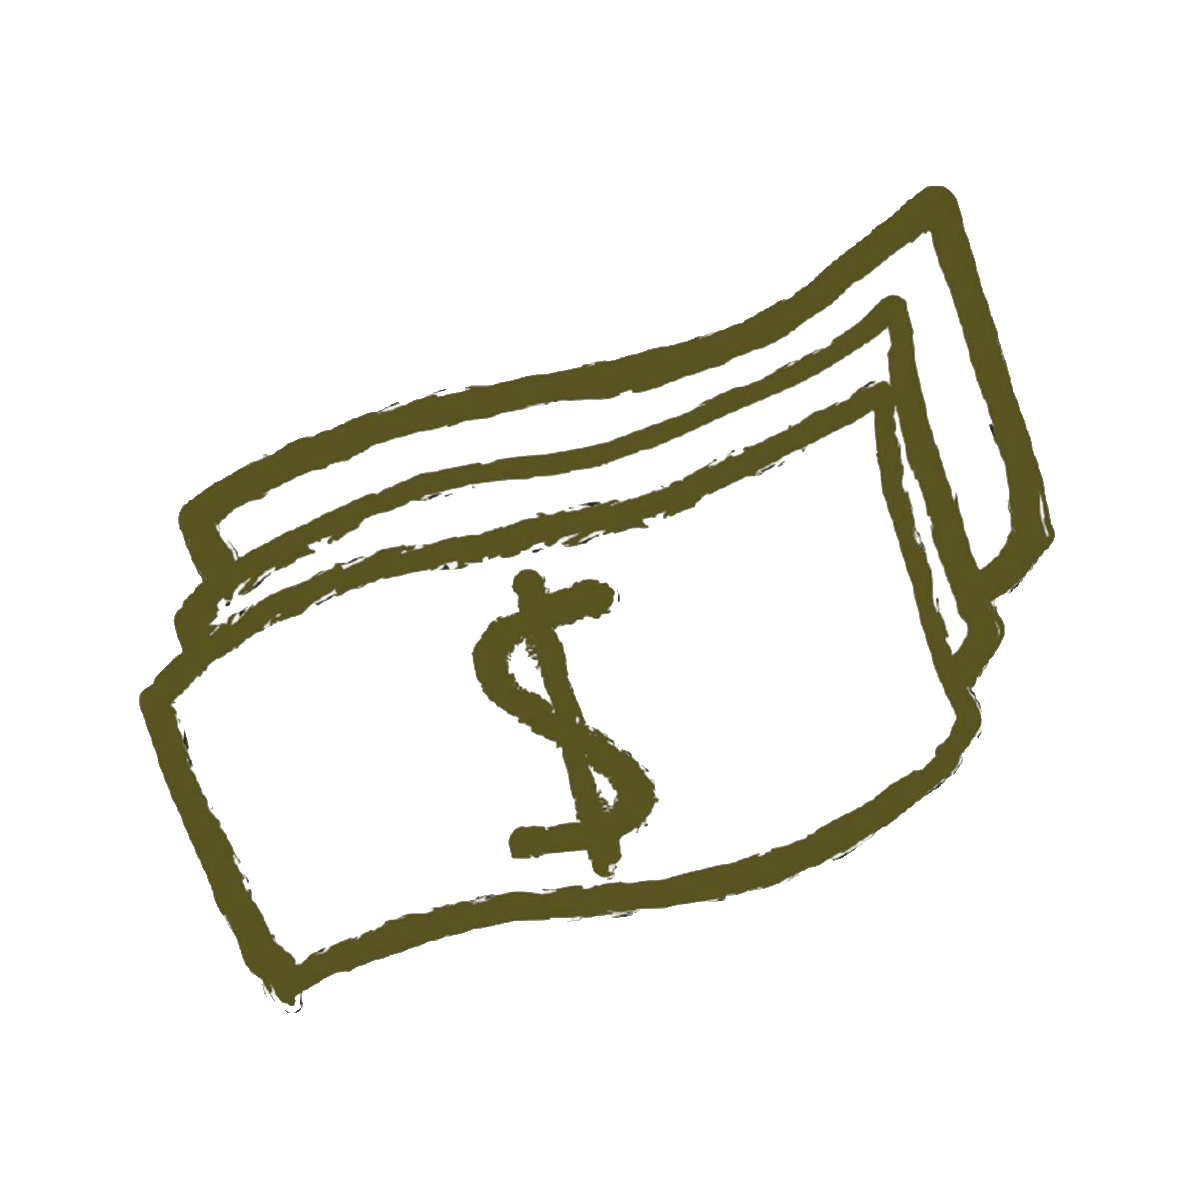 Money sketch